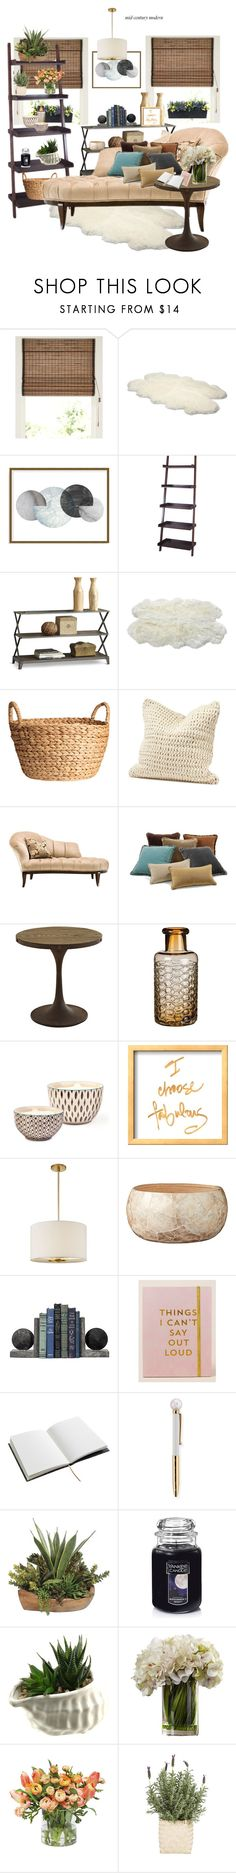 """""""Mid century modern"""" by wendyfer on Polyvore featuring interior, interiors, interior design, home, home decor, interior decorating, UGG, Art Addiction, Avignon and Luxe Collection"""